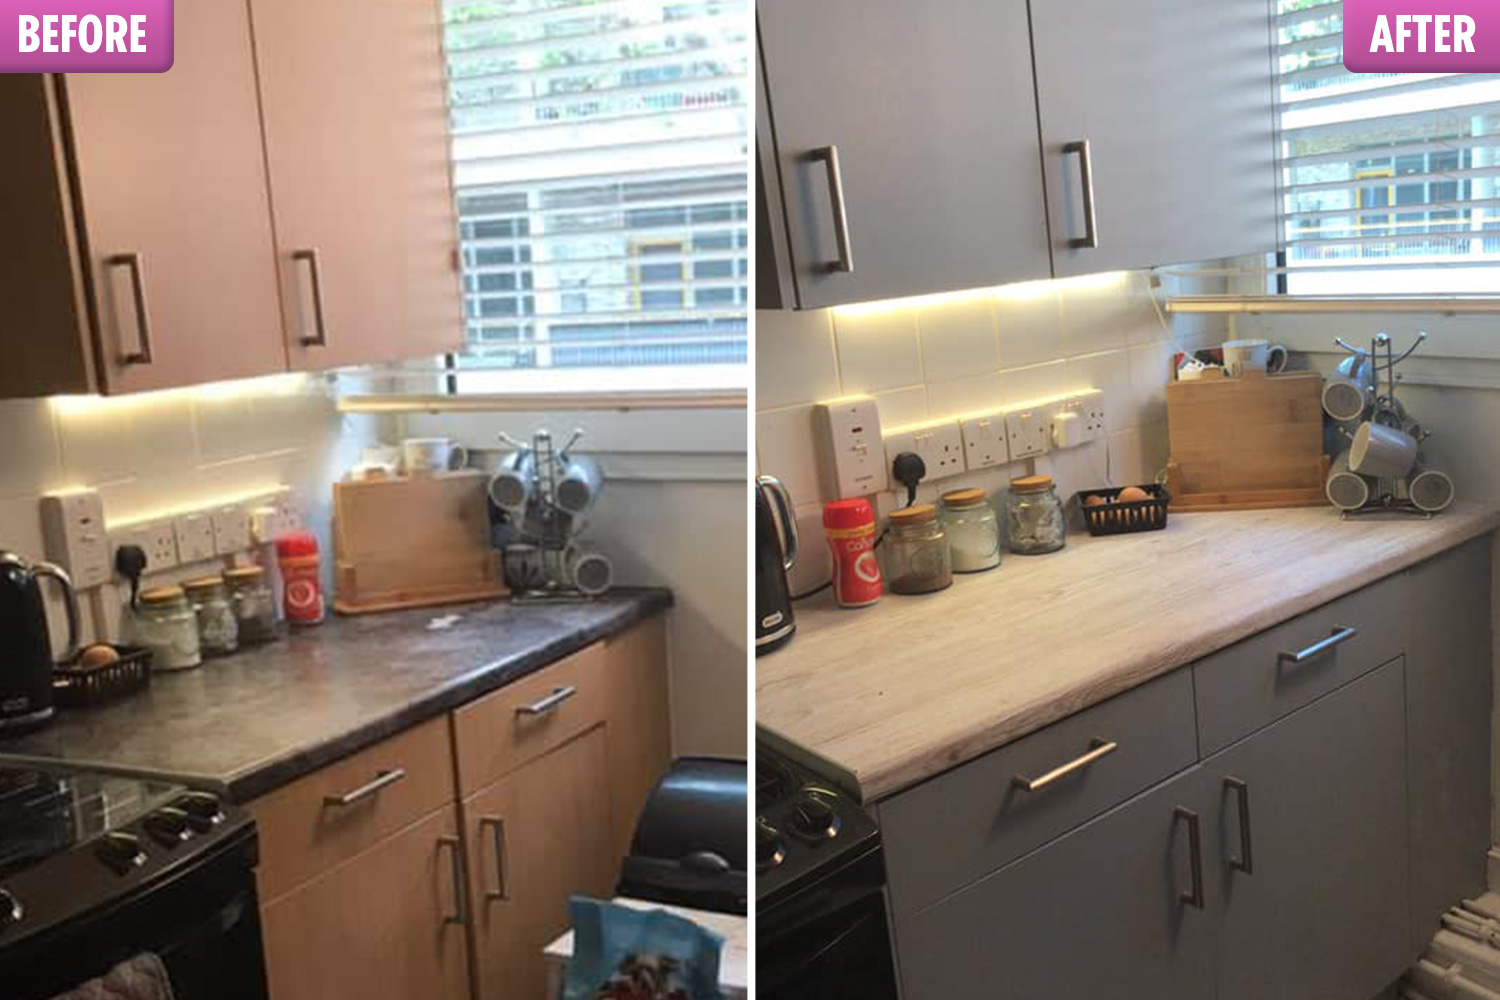 B&q Kitchen Design Jobs Woman Revamps Her Kitchen For 31 Using Trendy Worktop Stickers And